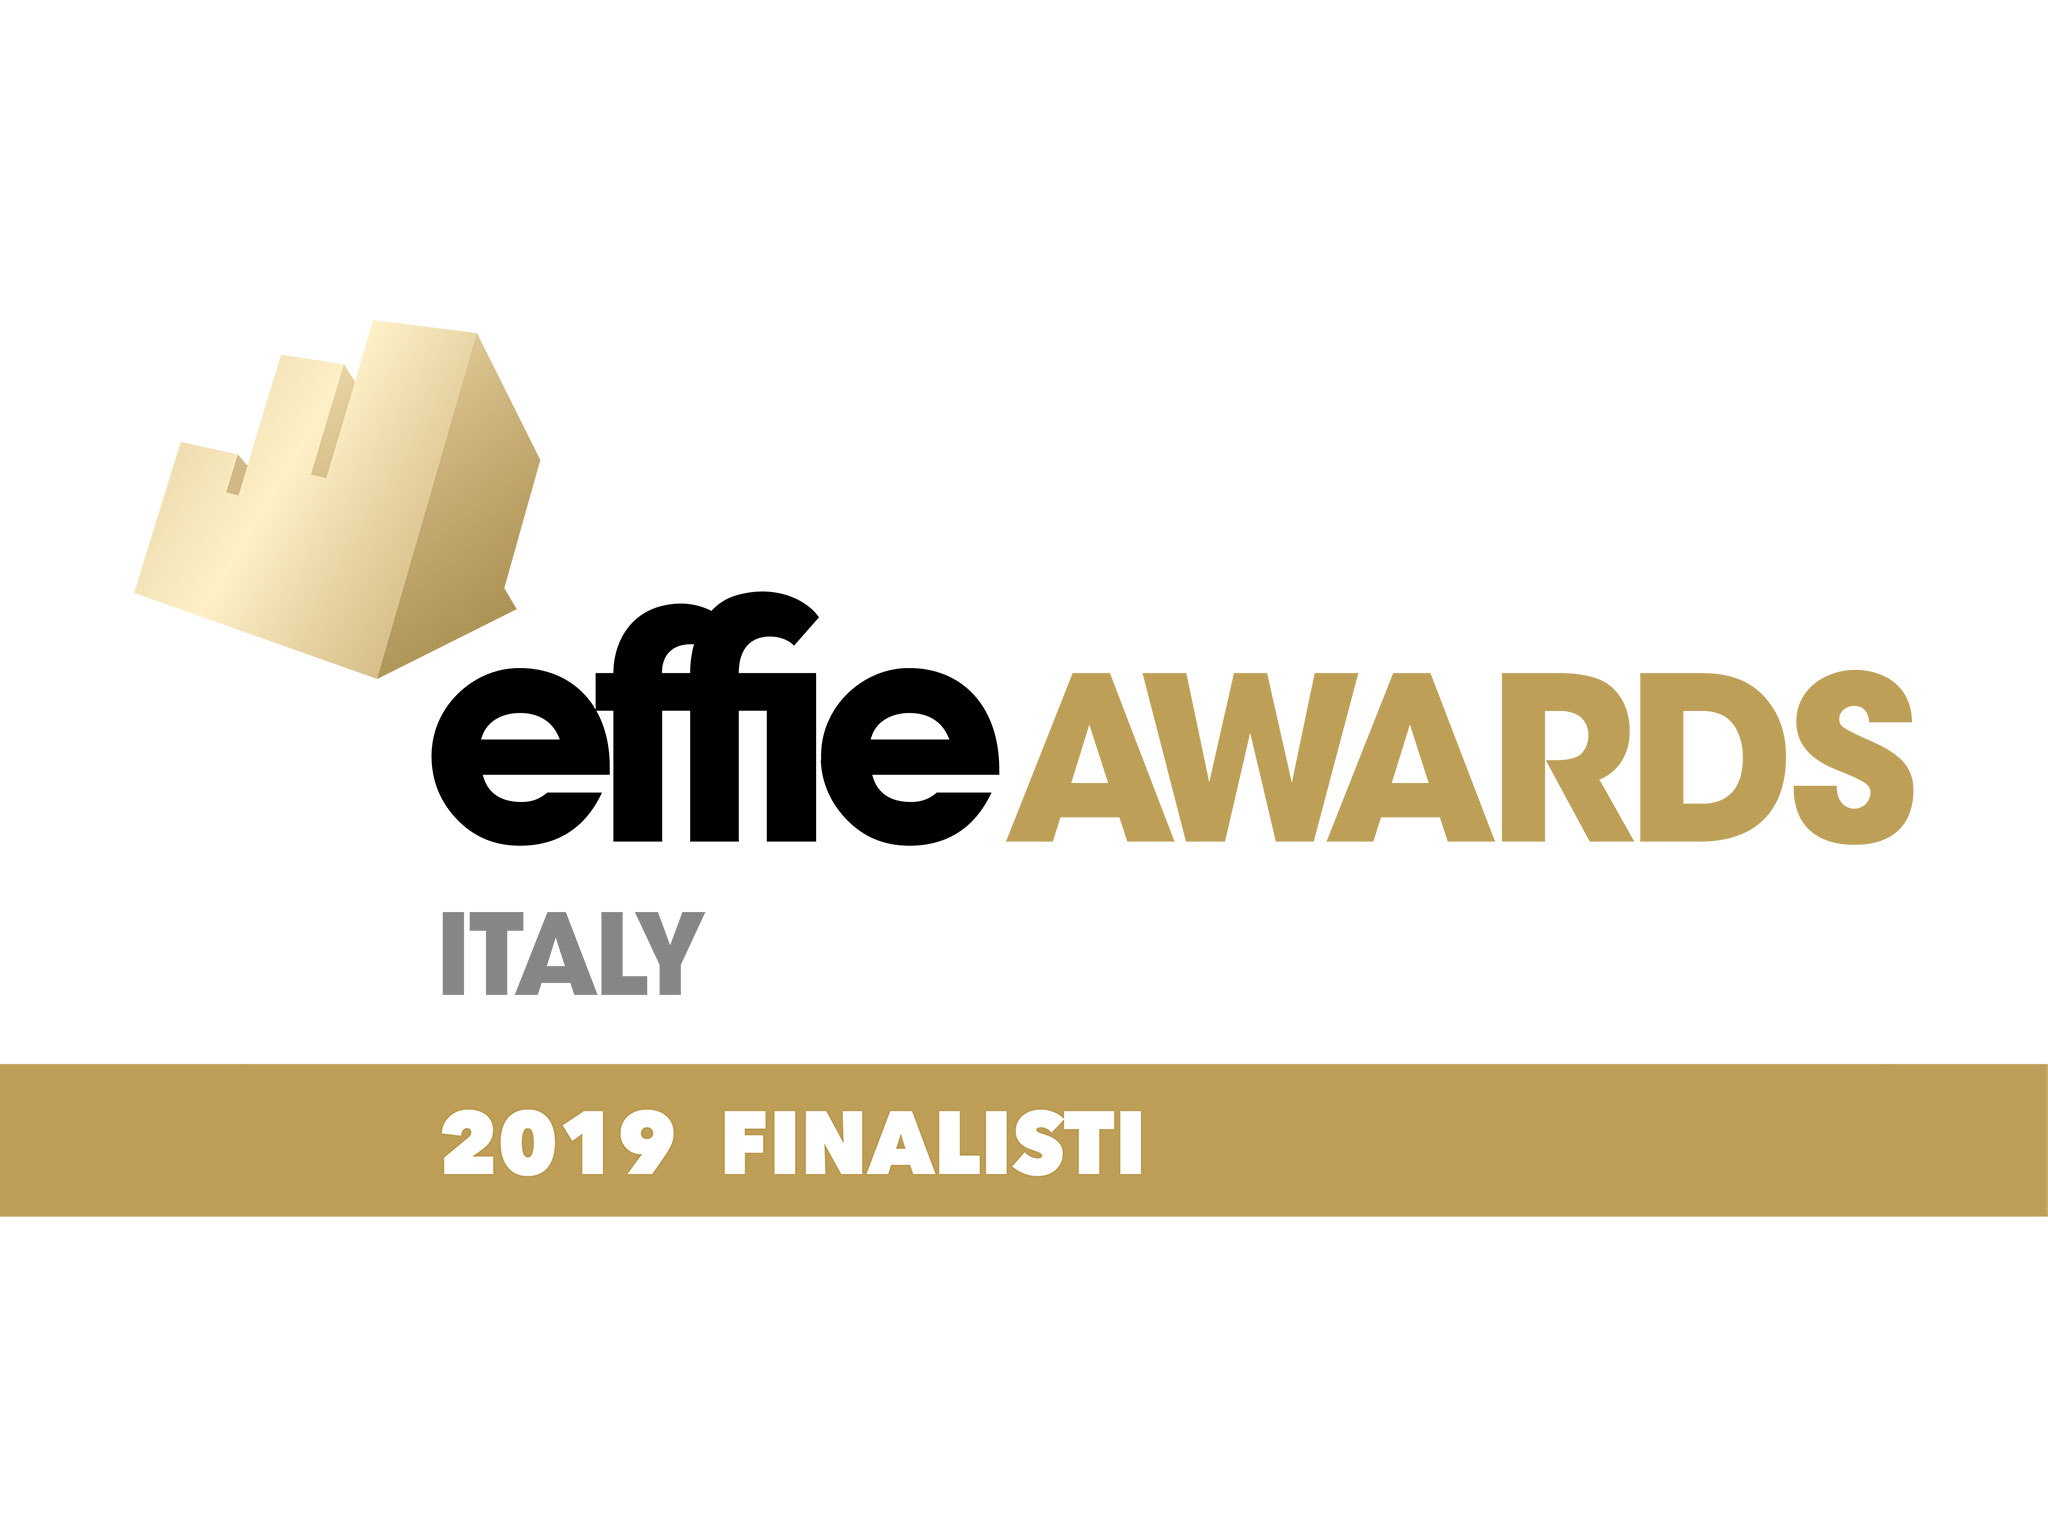 effie-awards-gmg-production-infinity